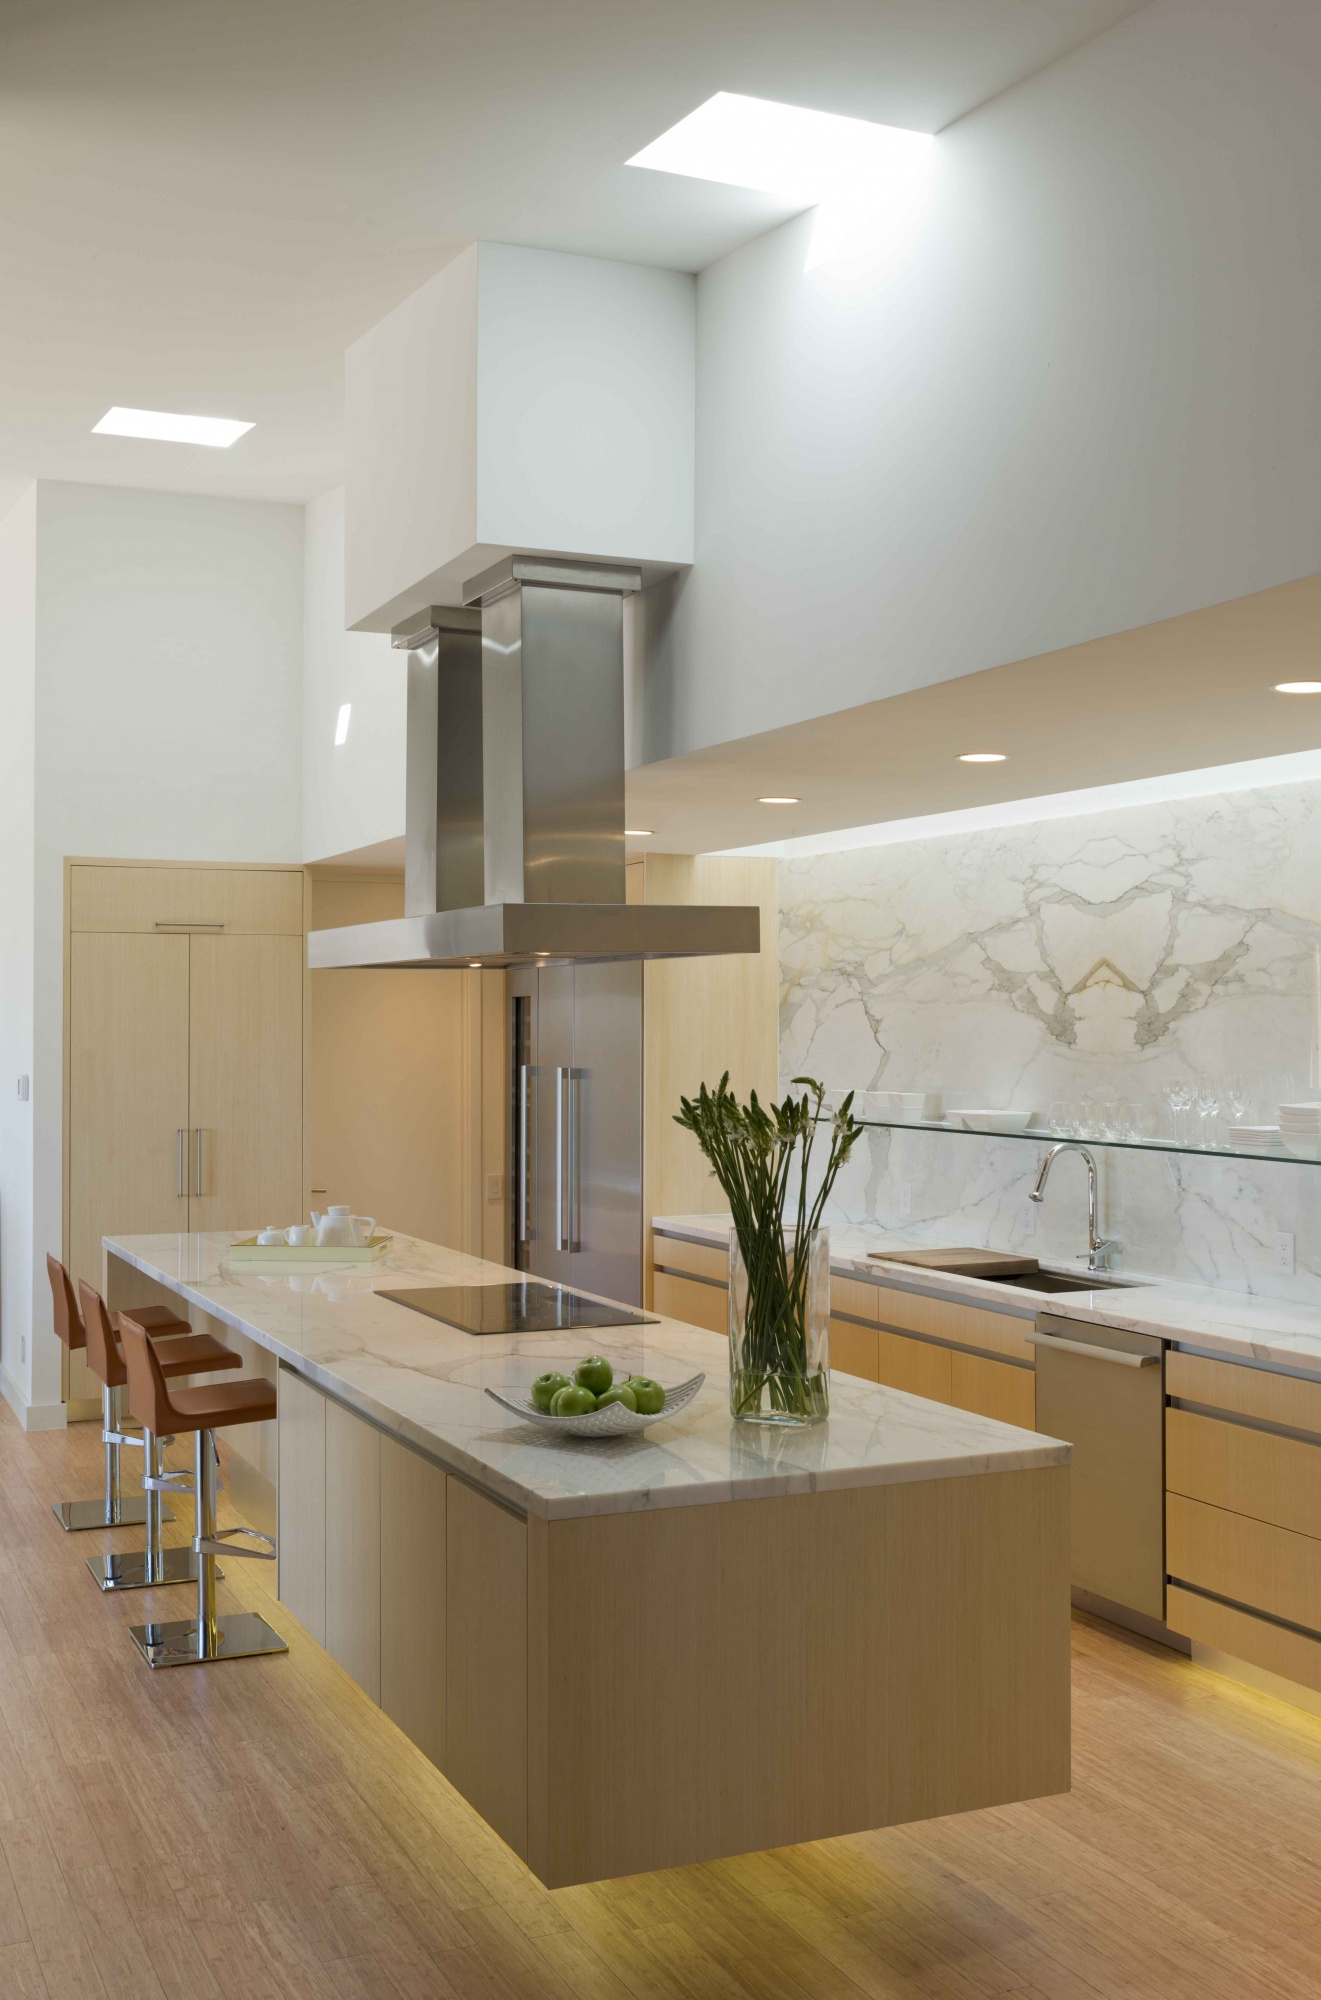 The appearance of levitation is experienced within the kitchen cabinetry.